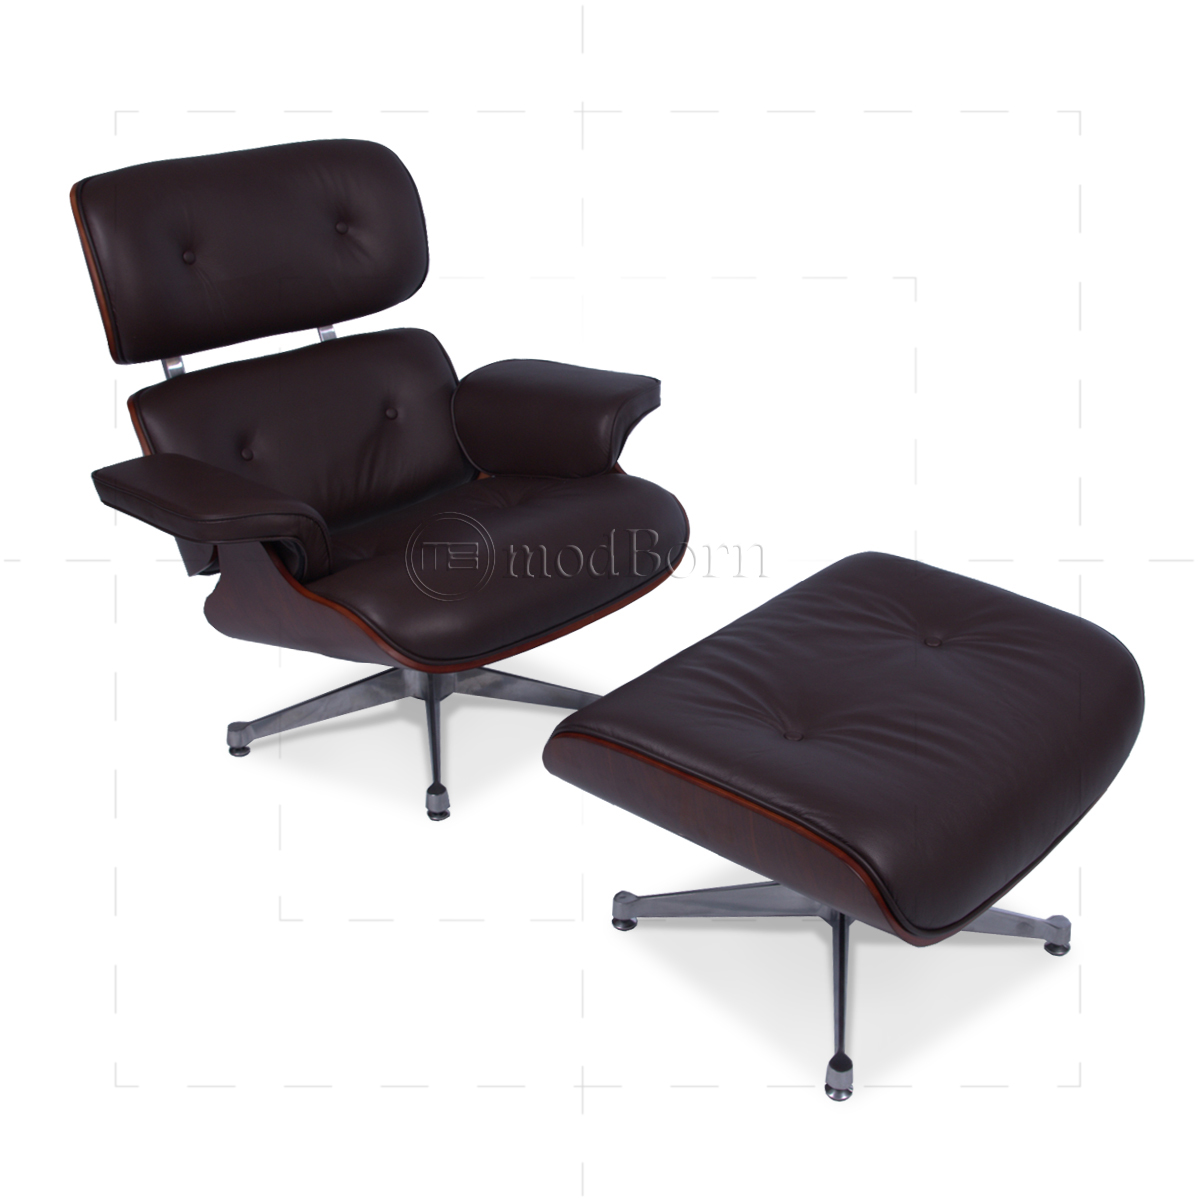 Wondrous Eames Style Lounge Chair And Ottoman Black Leather Pdpeps Interior Chair Design Pdpepsorg